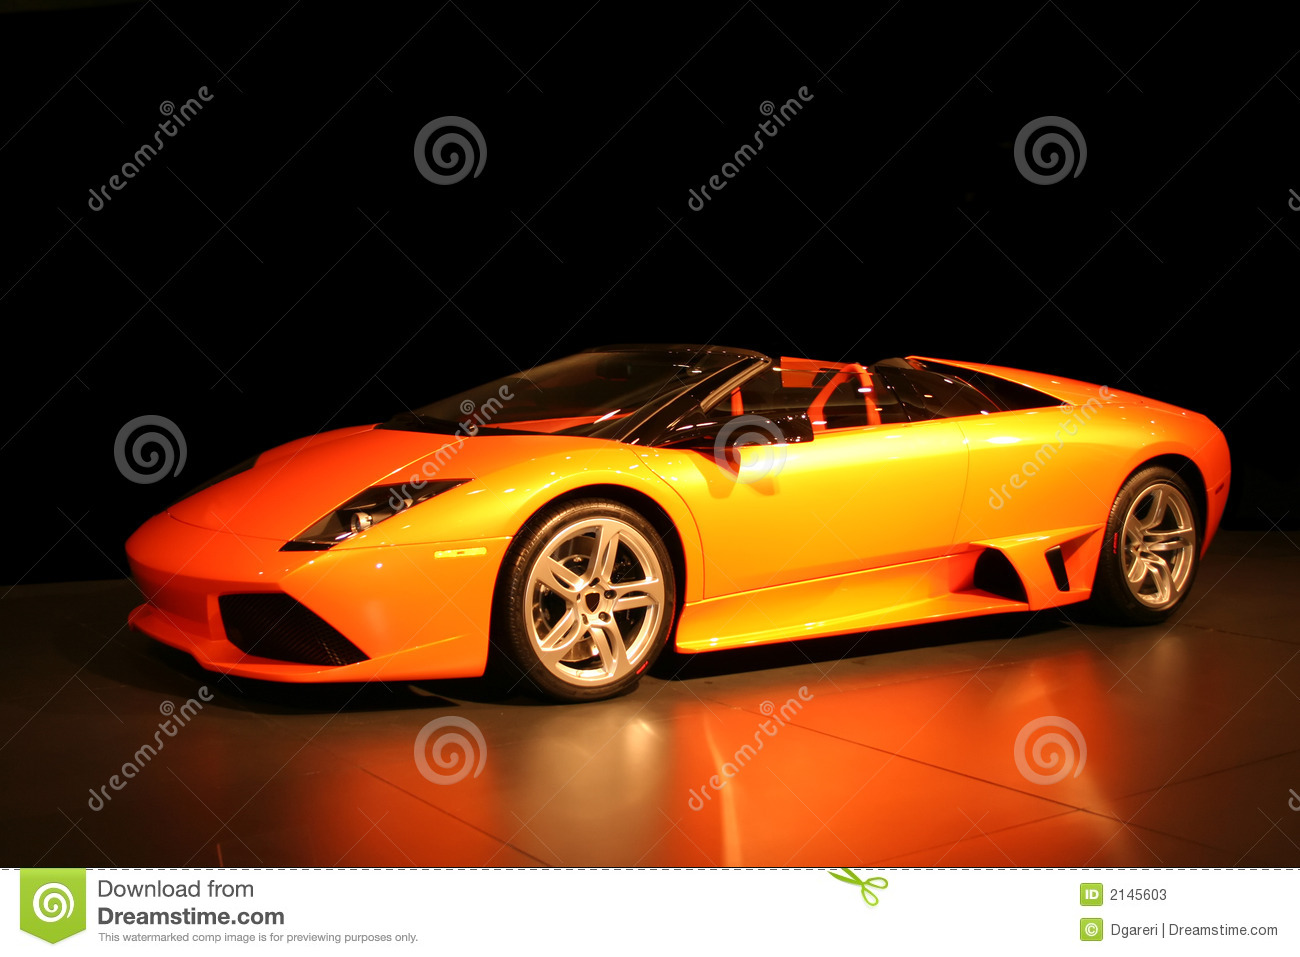 Expensive, Fancy Sports Car Stock Photos - Image: 2145603